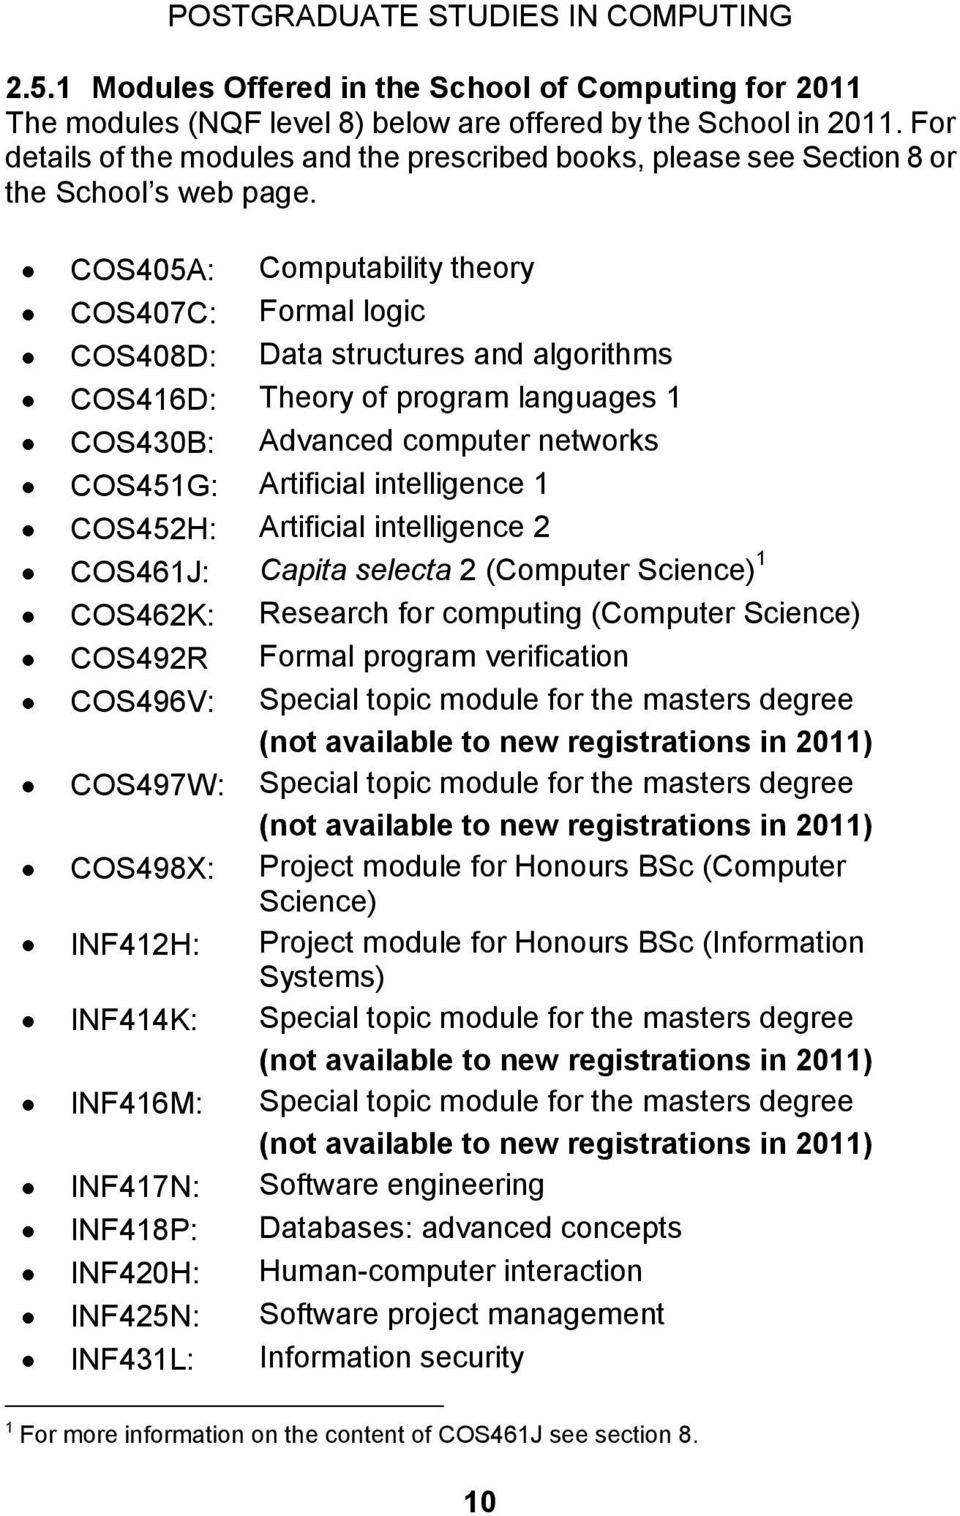 COS405A: Computability theory COS407C: Formal logic COS408D: Data structures and algorithms COS416D: Theory of program languages 1 COS430B: Advanced computer networks COS451G: Artificial intelligence